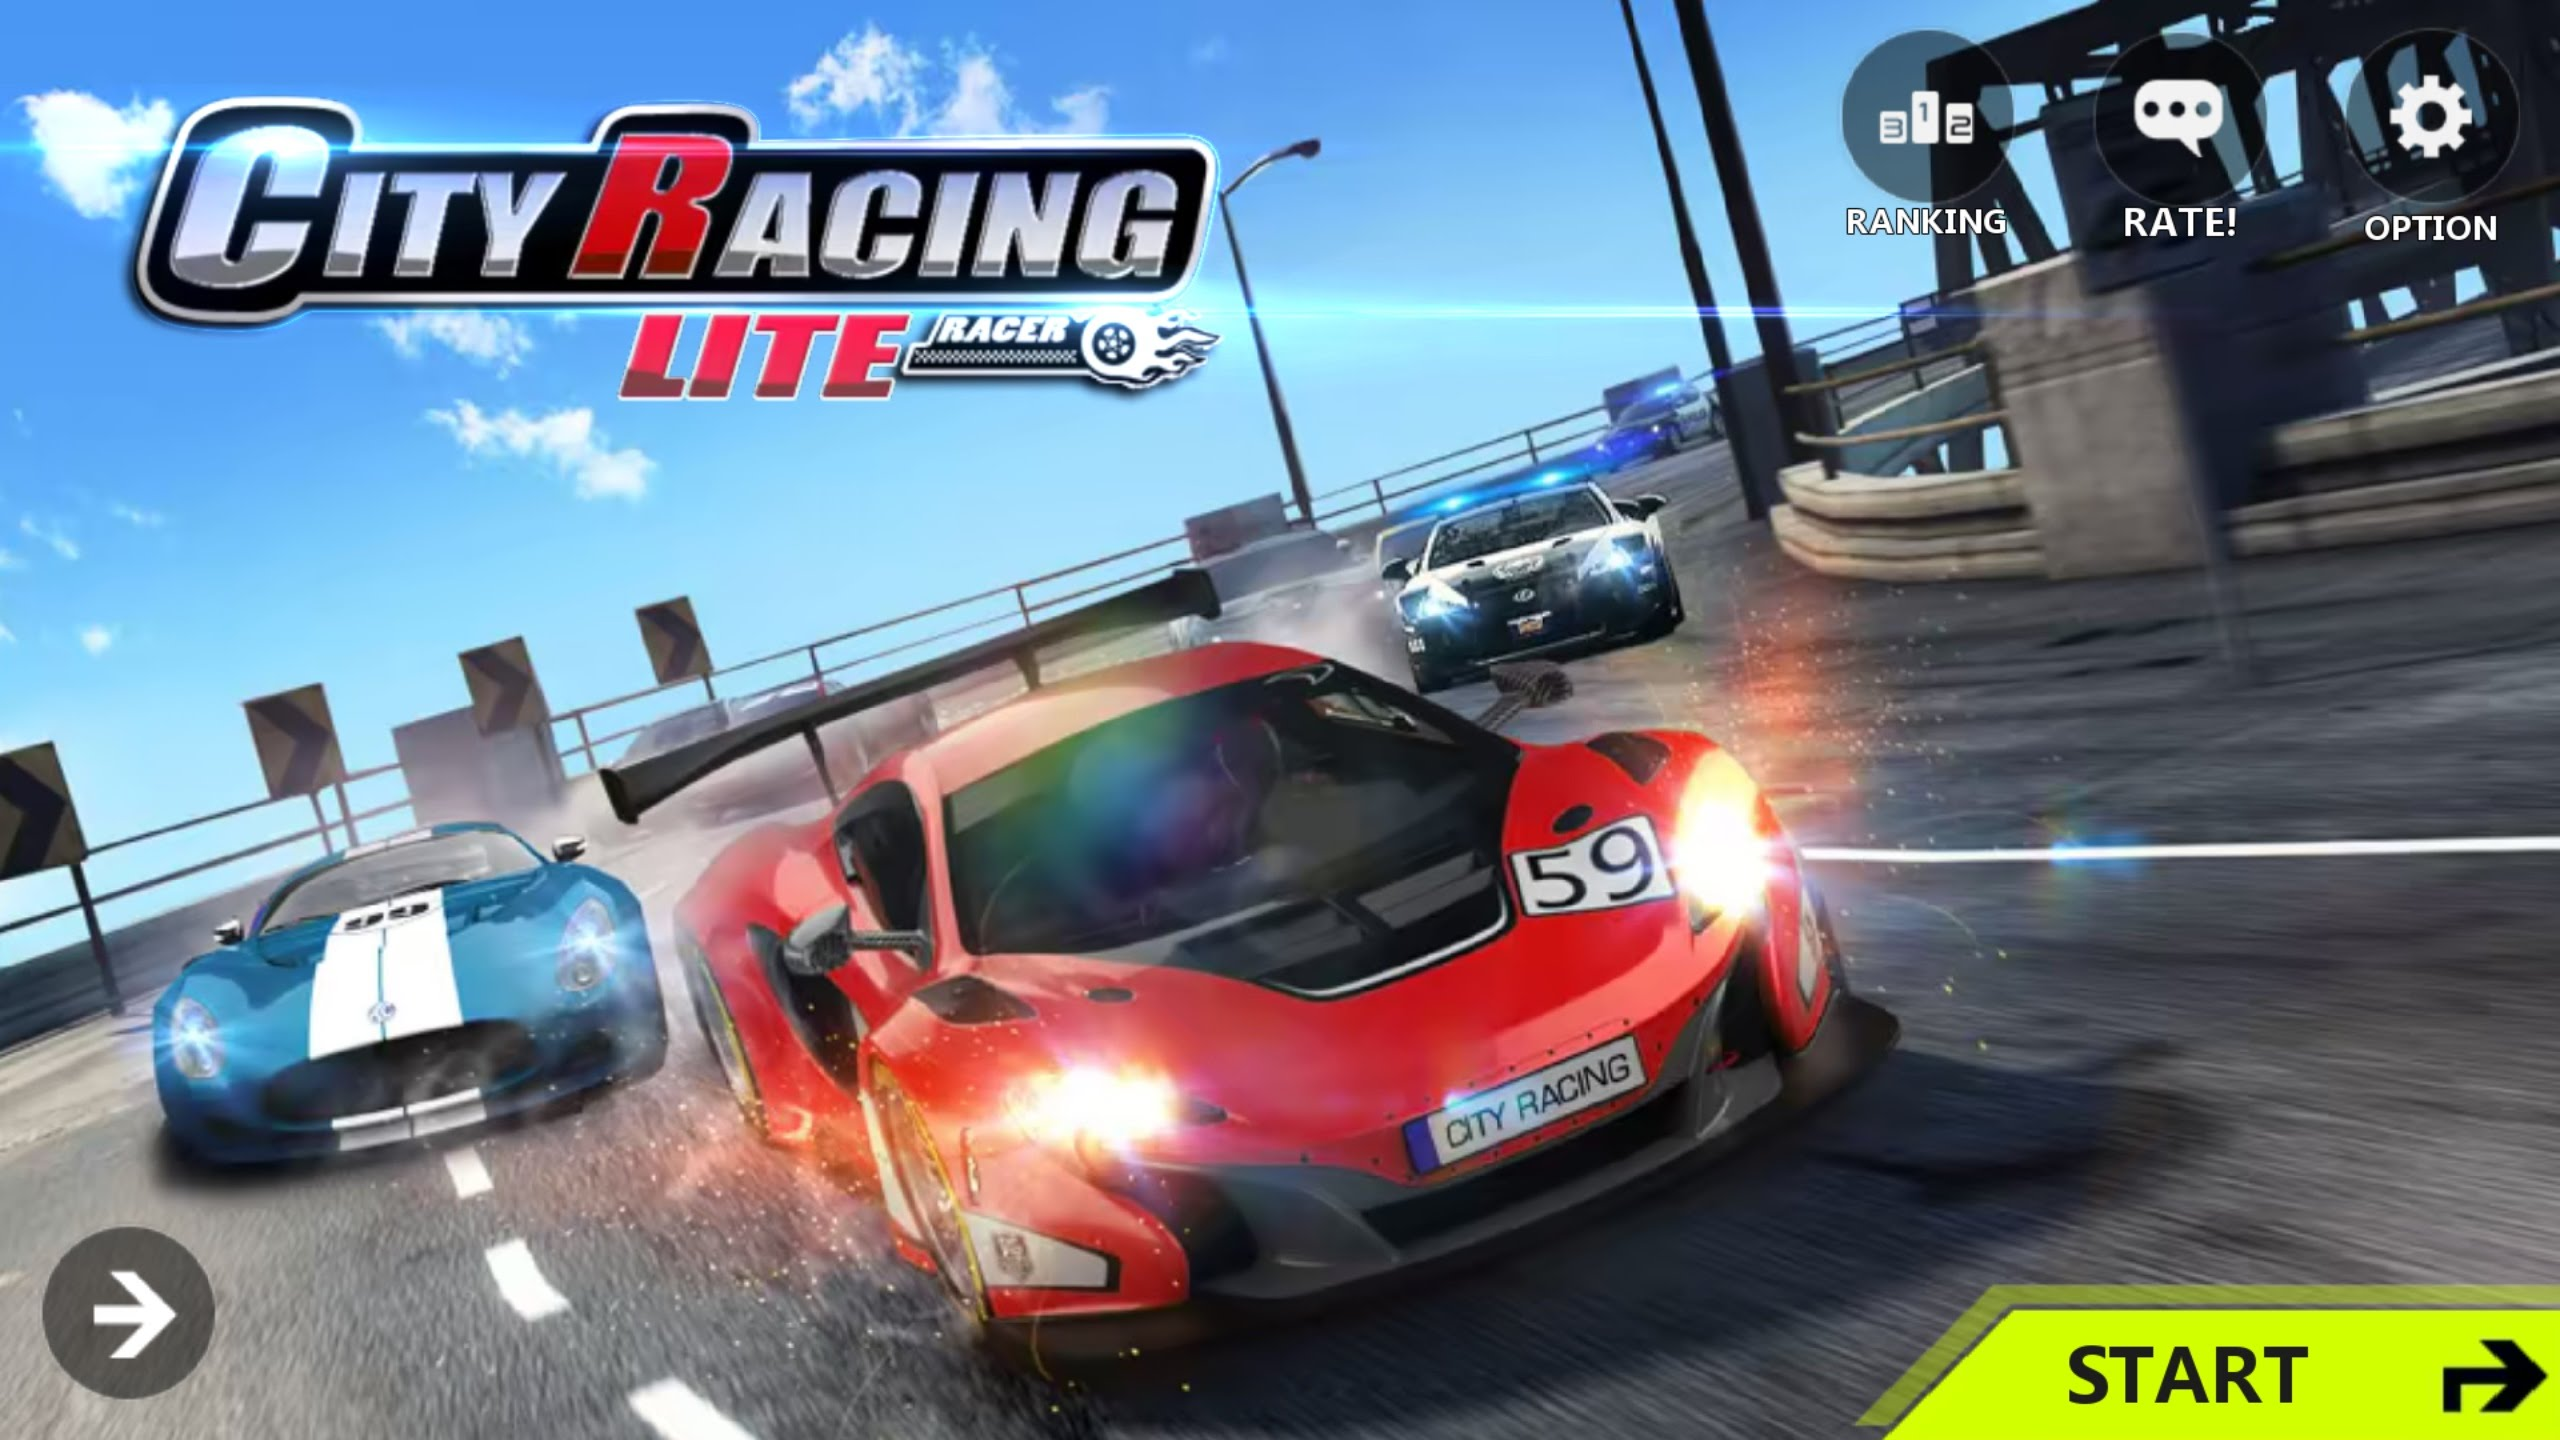 City Racing Lite v1.7.133 Mod Apk | AxeeTech